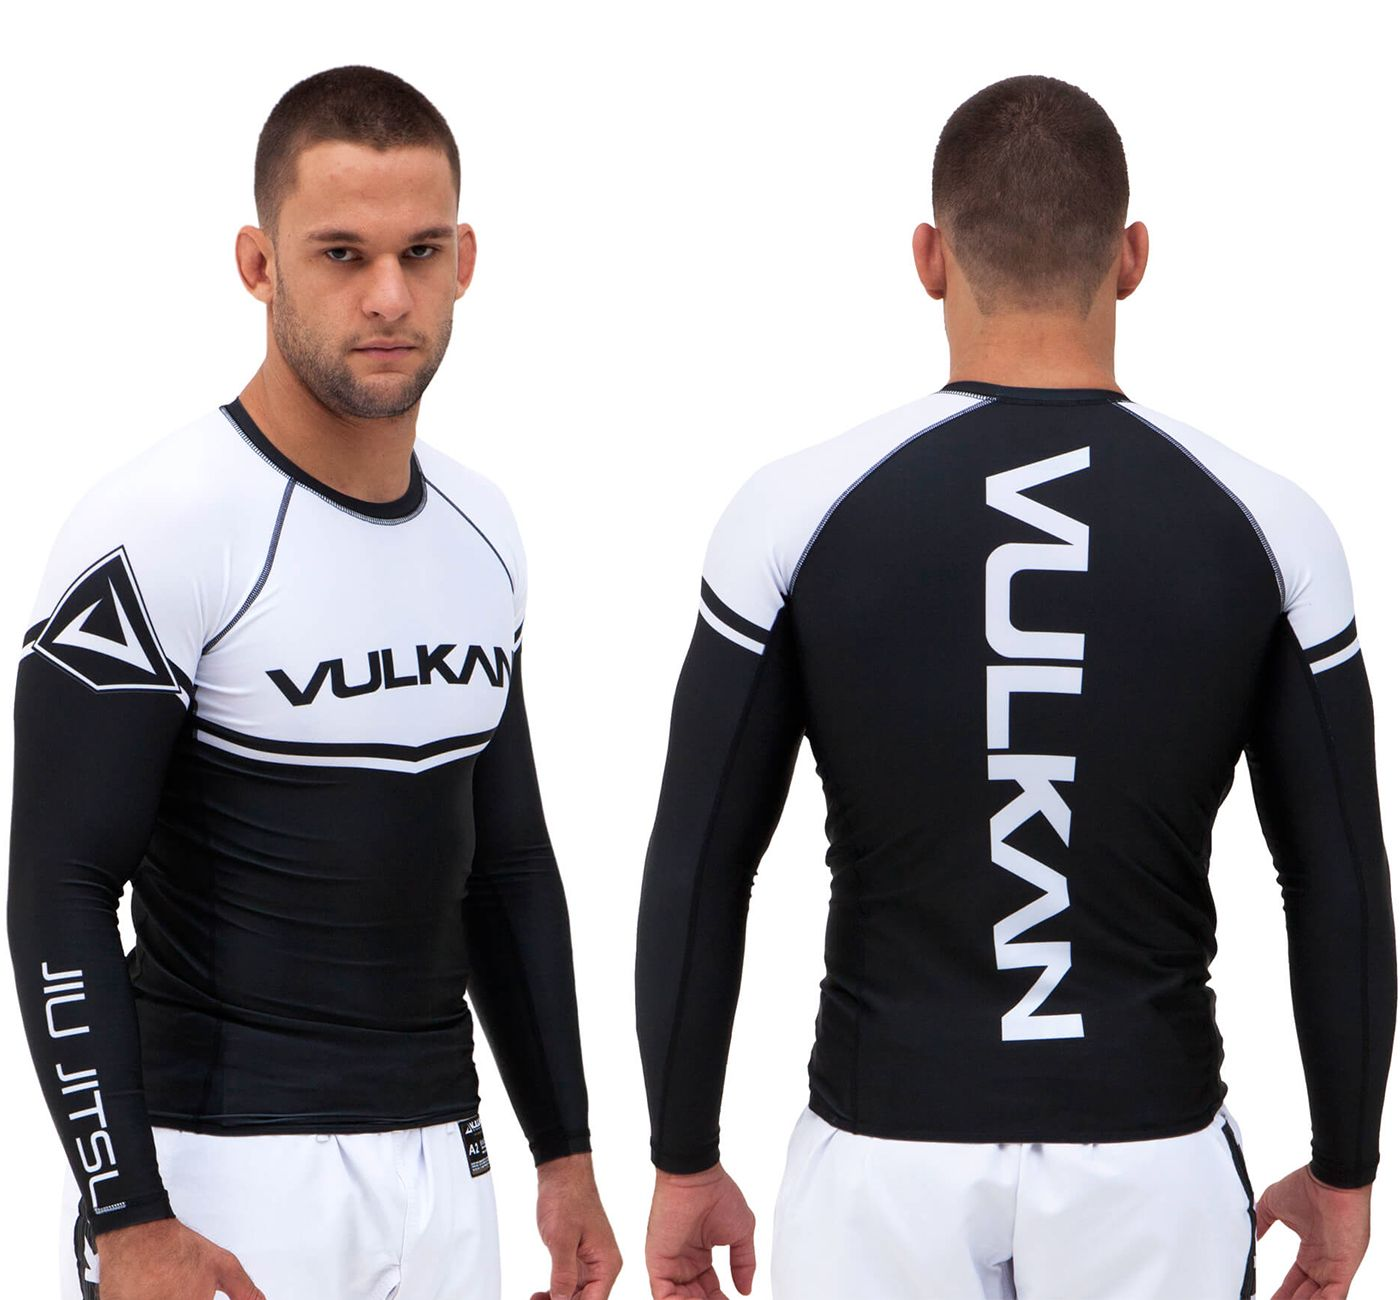 Vulkan Ranked Rashguard - Black/White LS